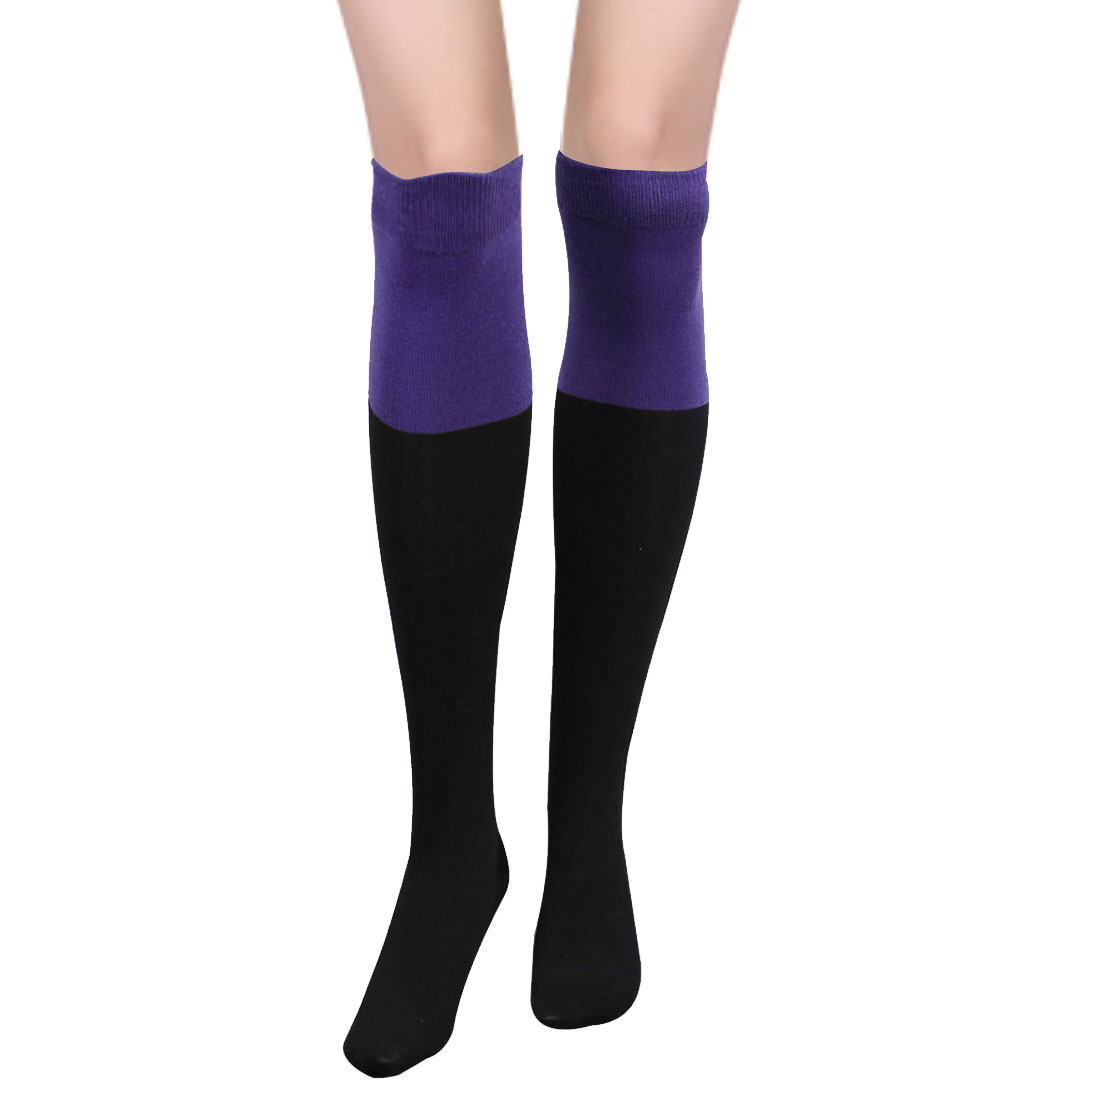 Womens Purple Top Textured Ribbed Knit Leg Warmers Stocking Black Pair